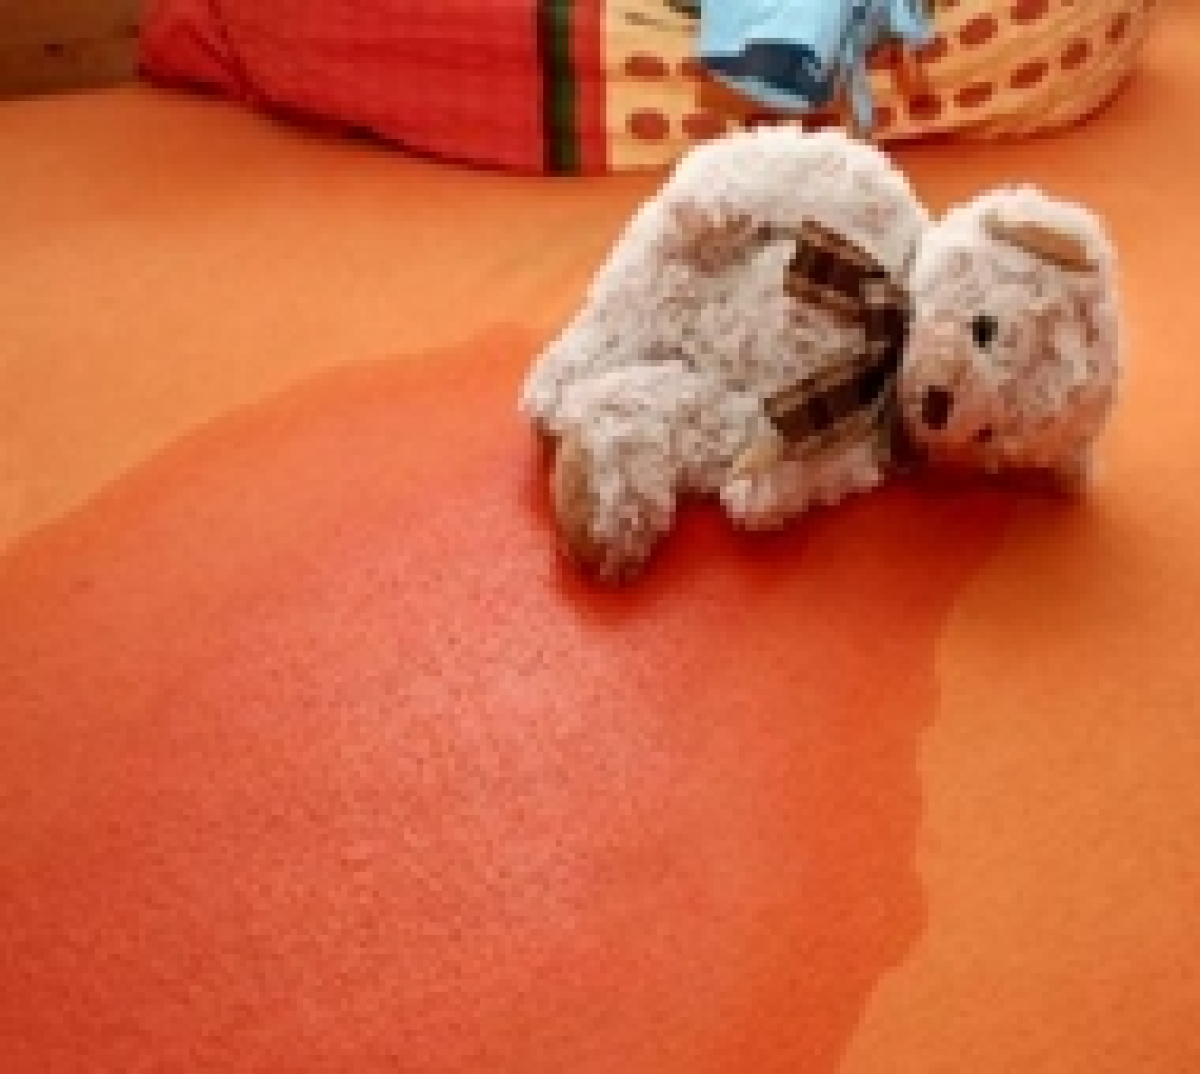 Your child more likely to wet bed if you did as a kid